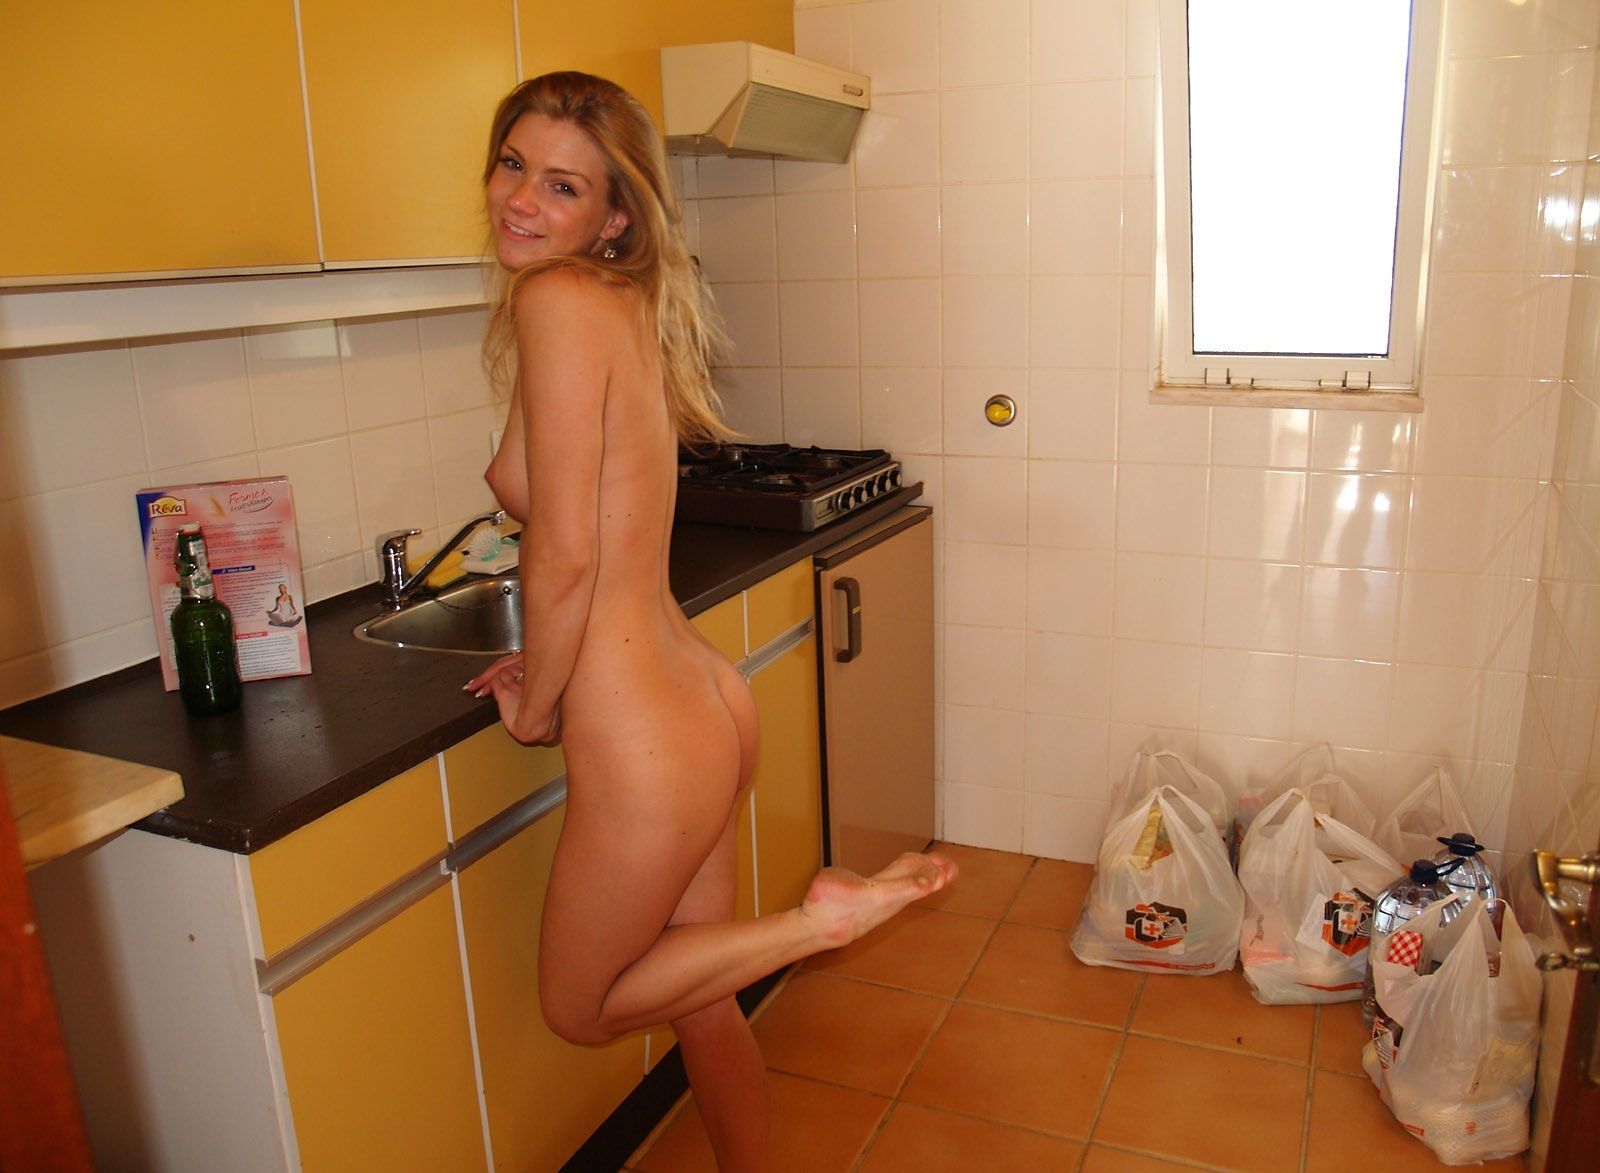 Portugal girl is amateur nude #11